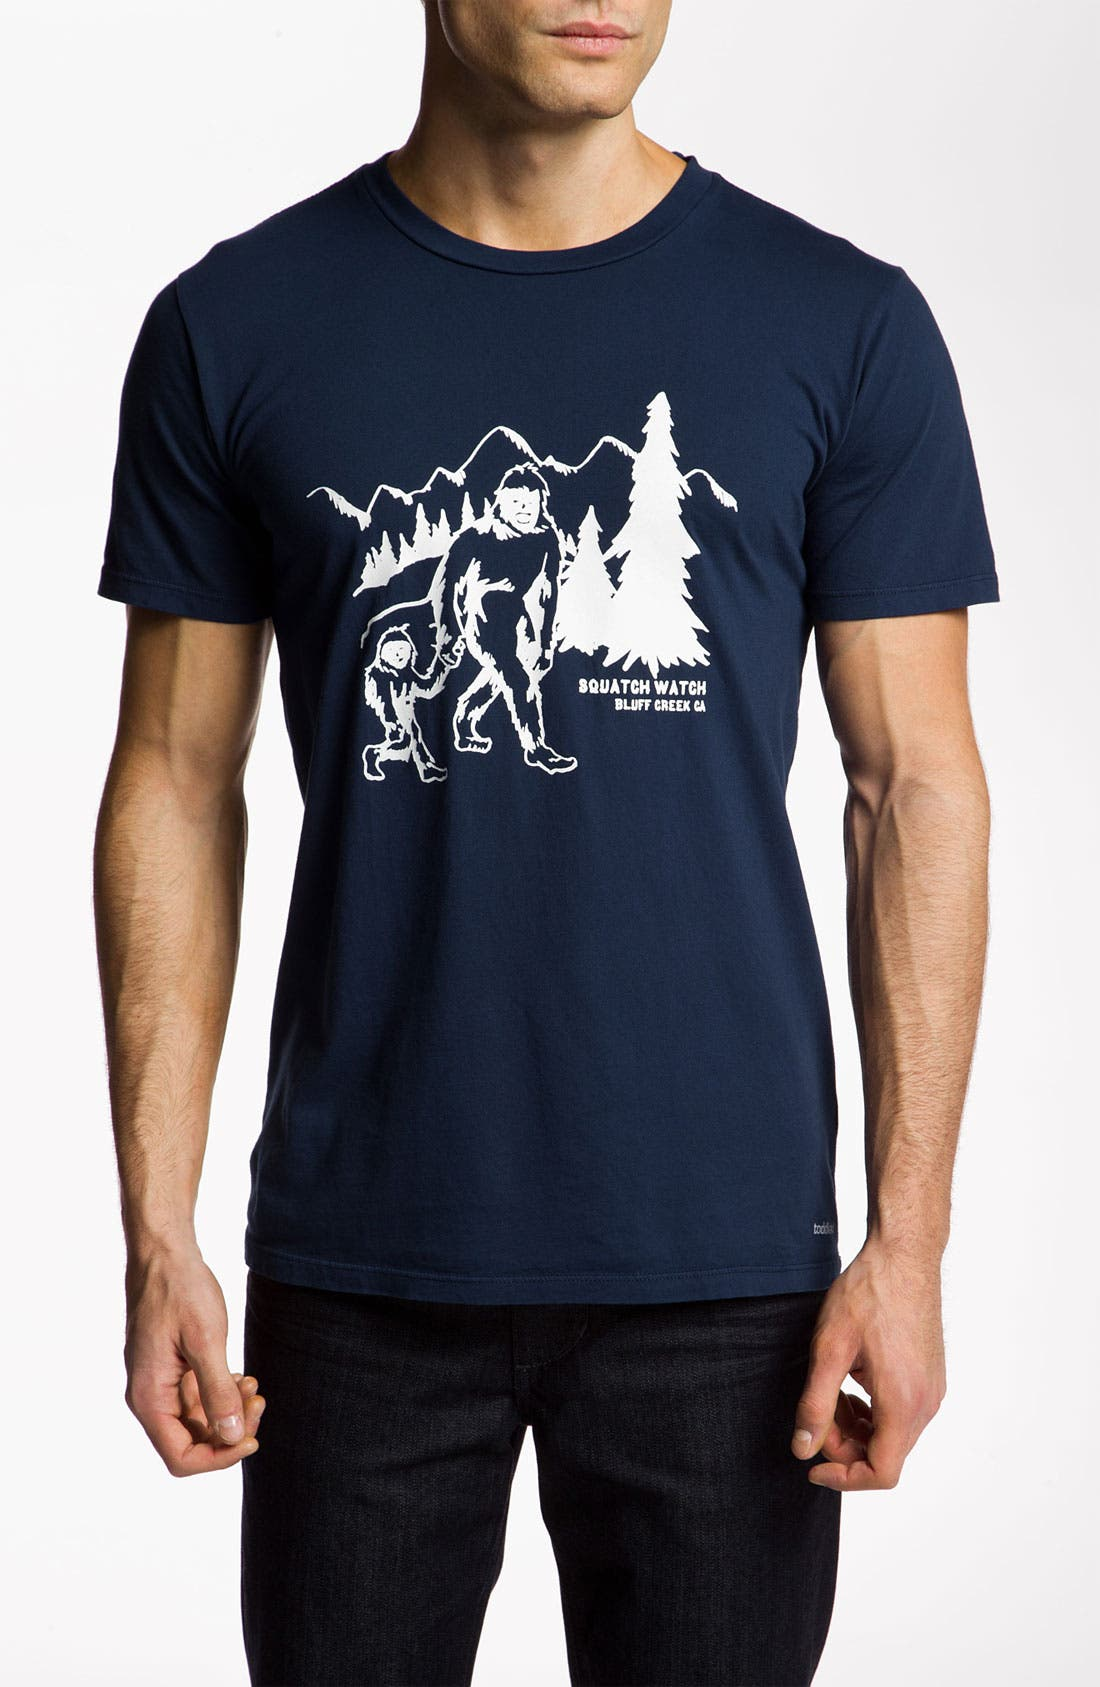 Main Image - Toddland 'Squatch Watch' T-Shirt